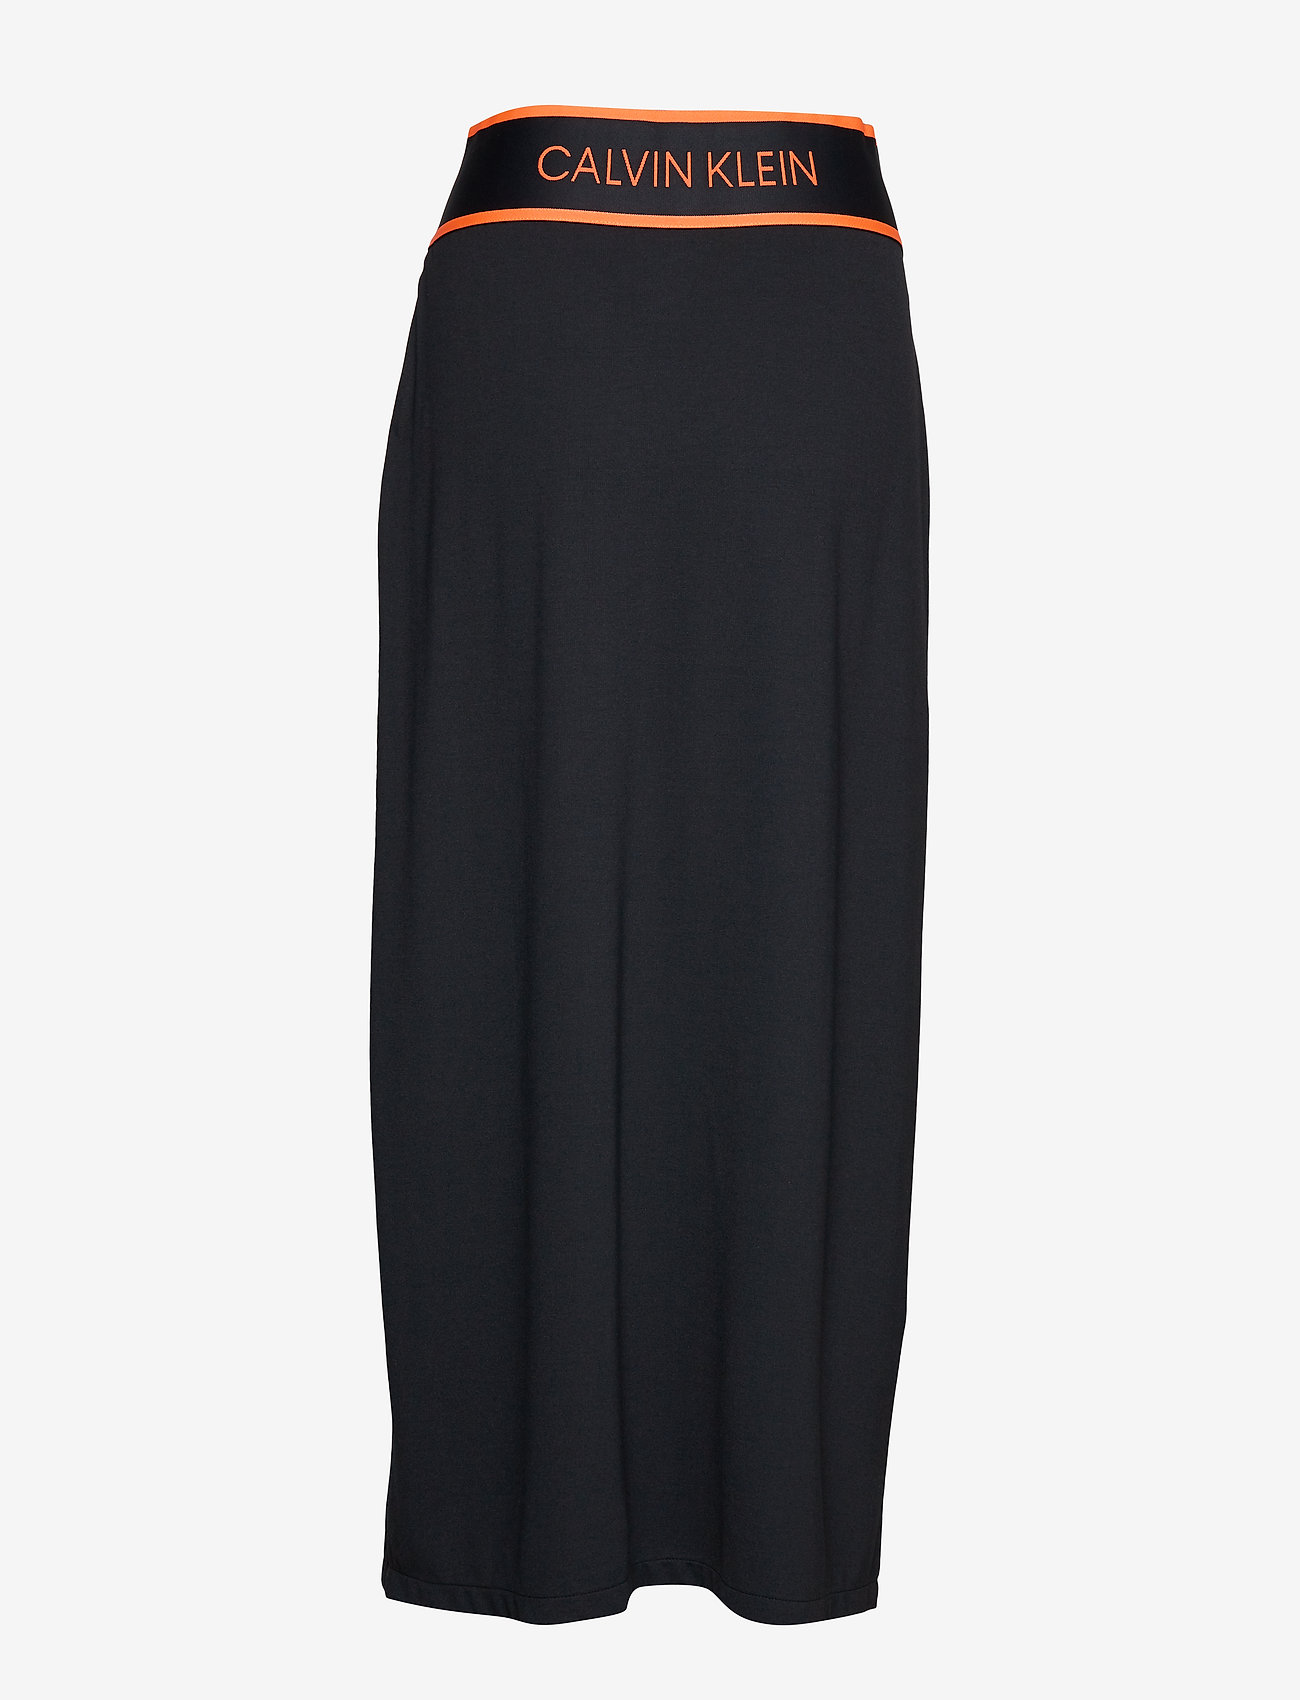 Calvin Klein Performance - MIDI SKIRT - sports skirts - ck black/fiery coral - 1